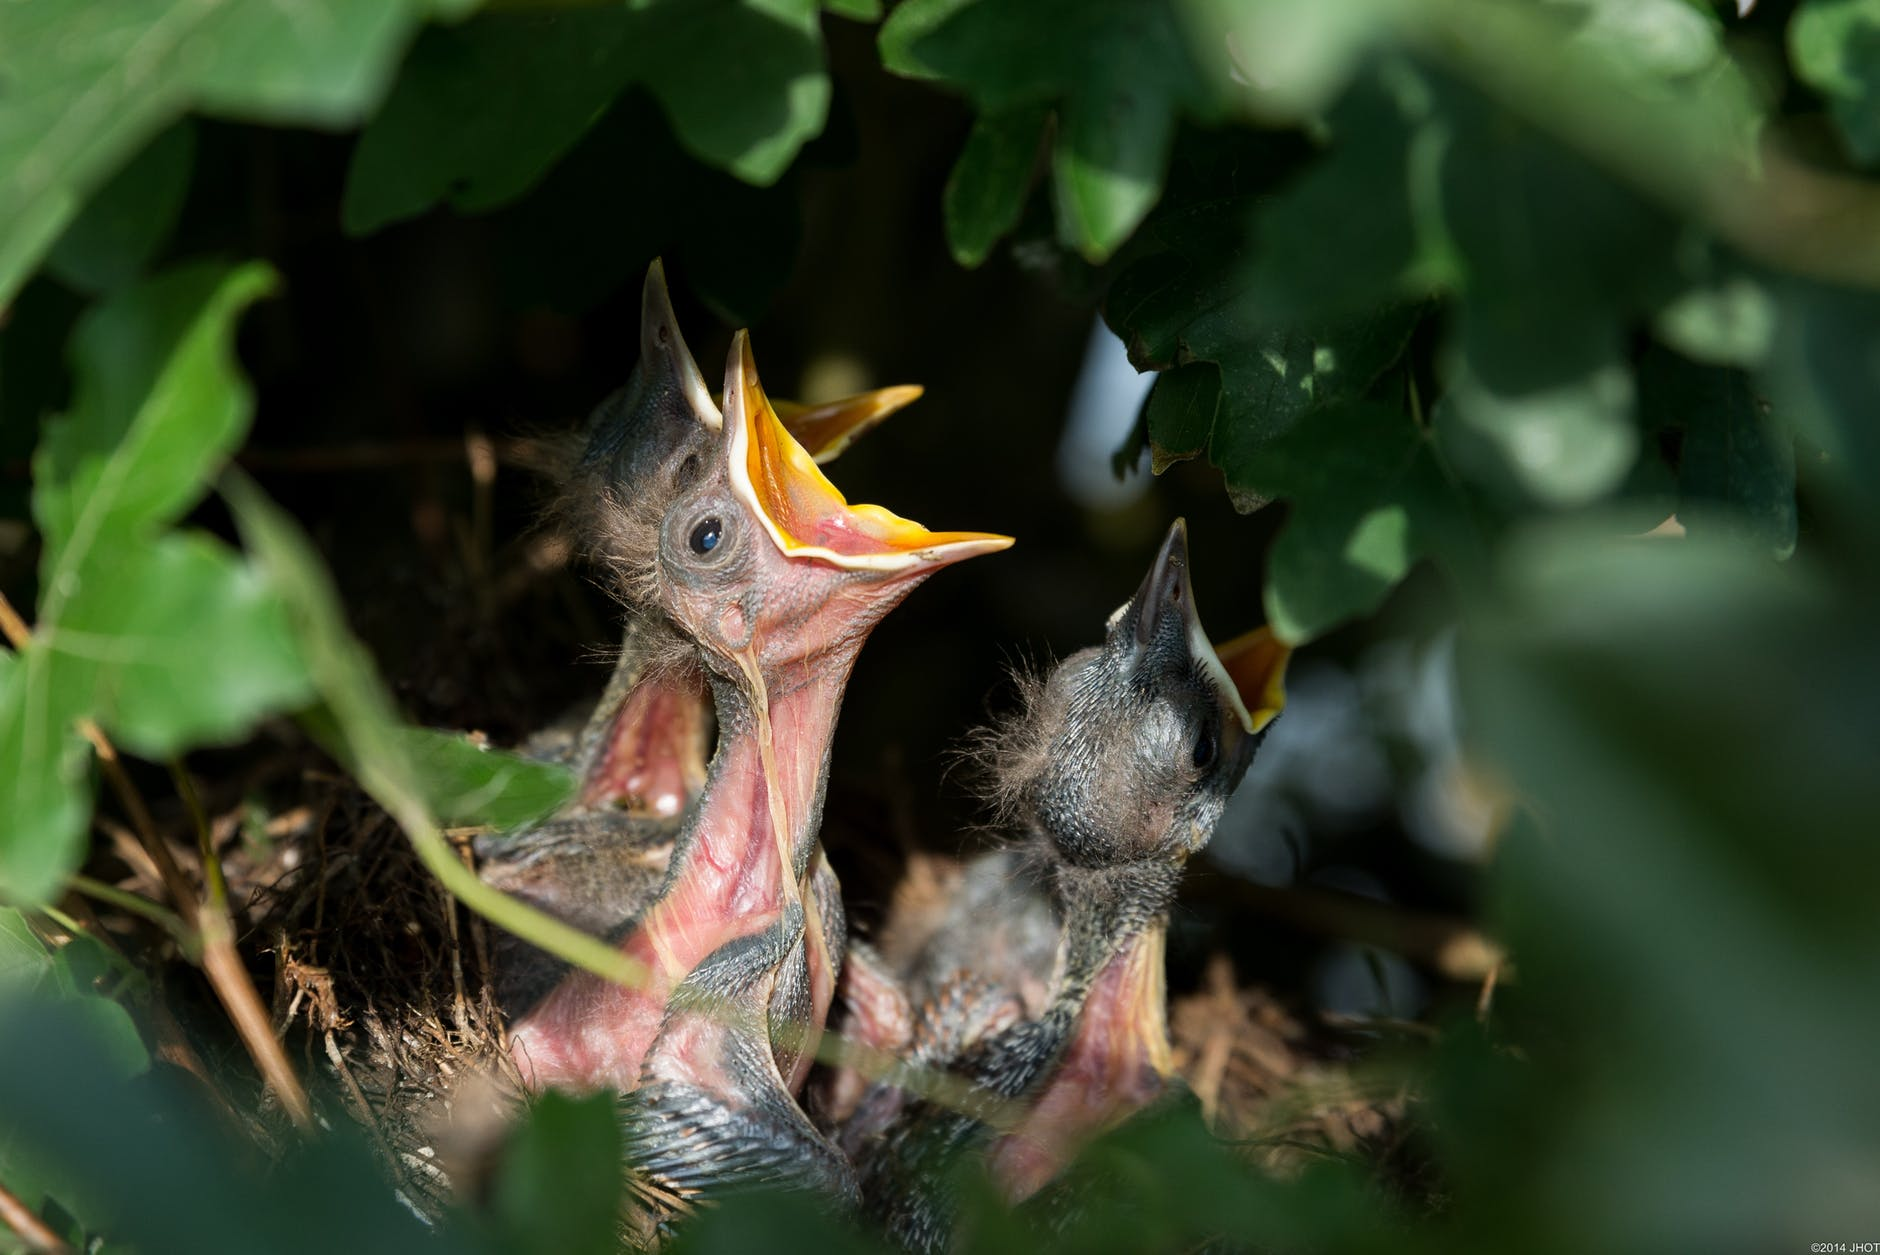 hungry baby birds in nest